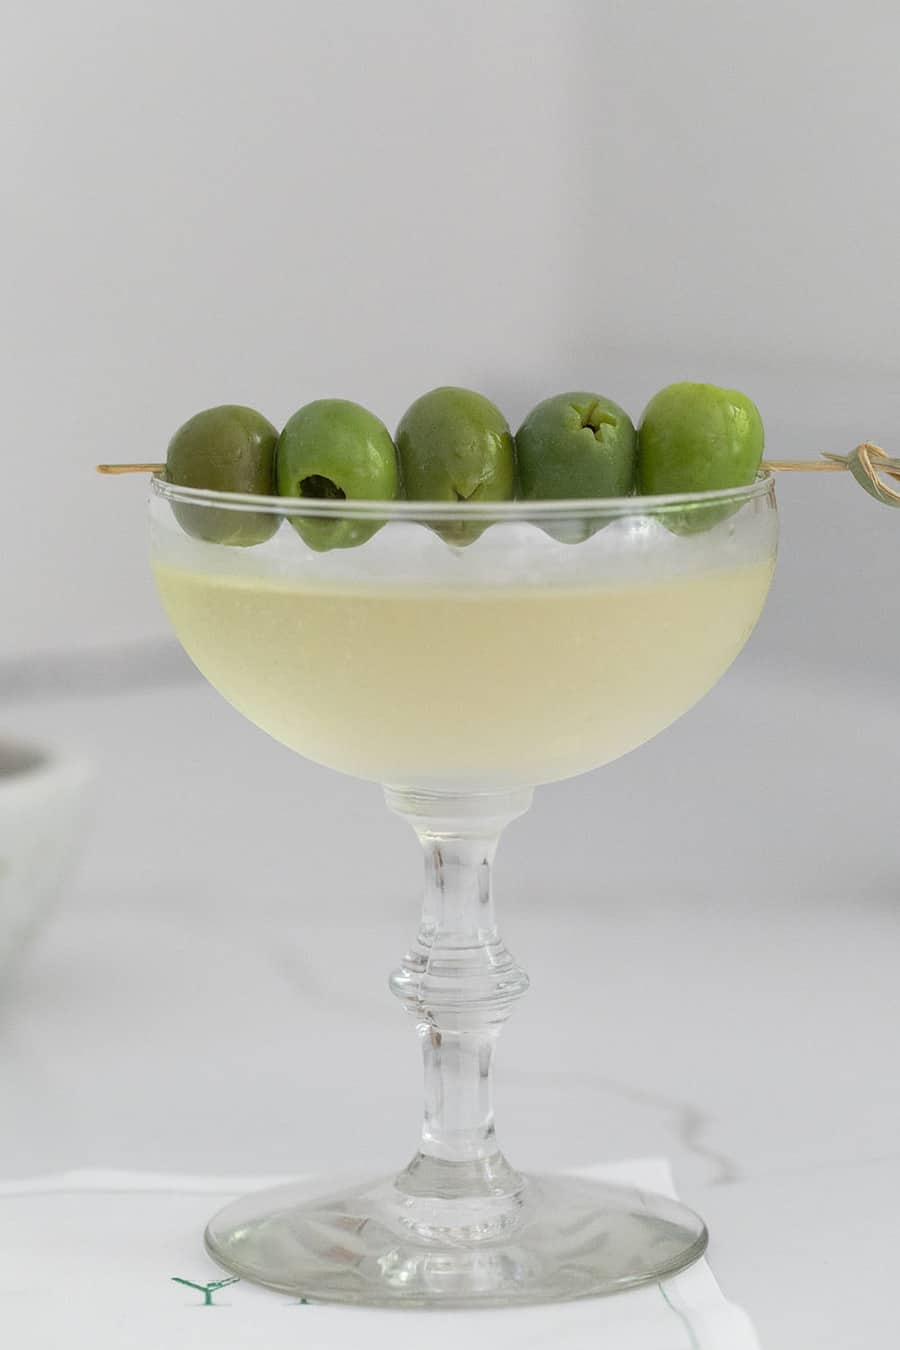 Green olives on a cocktail coupe